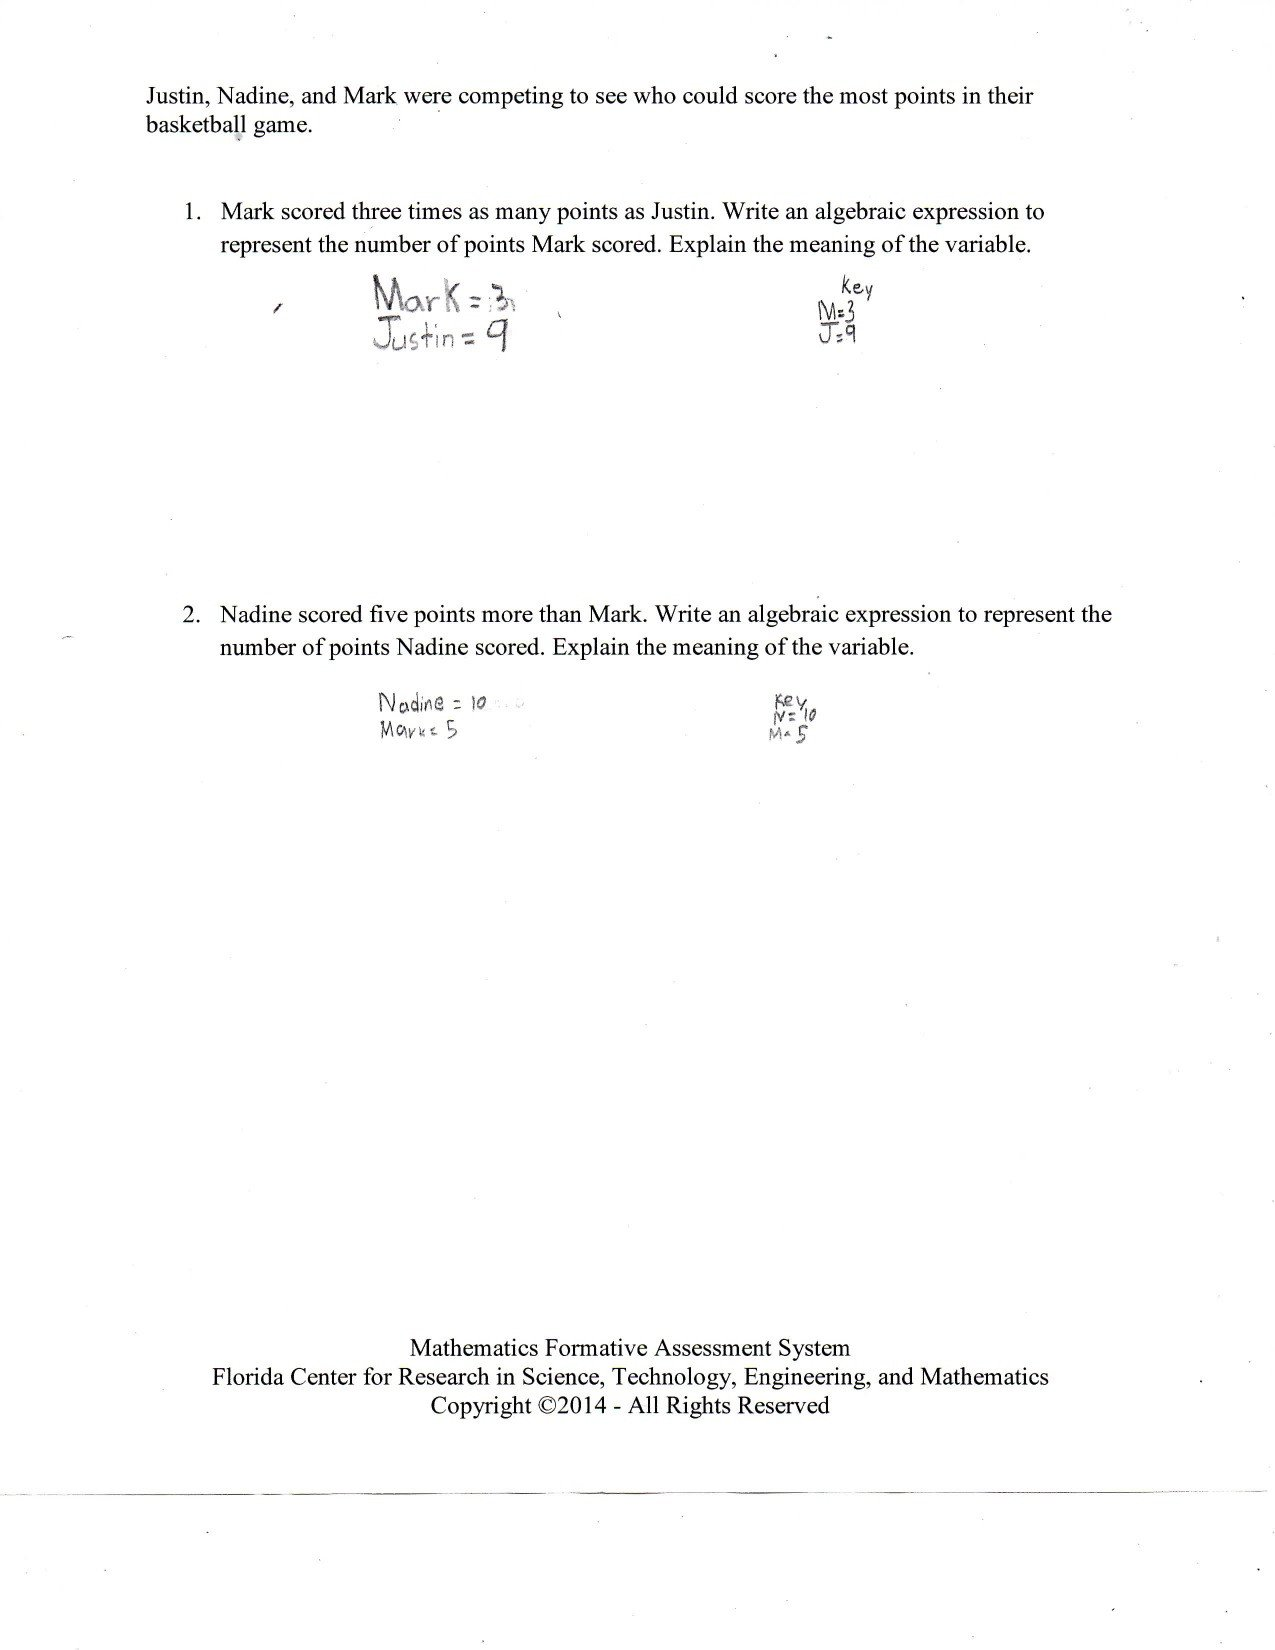 Numerical Expressions Worksheets 6th Grade Interpreting Expressions Worksheet Answer Key